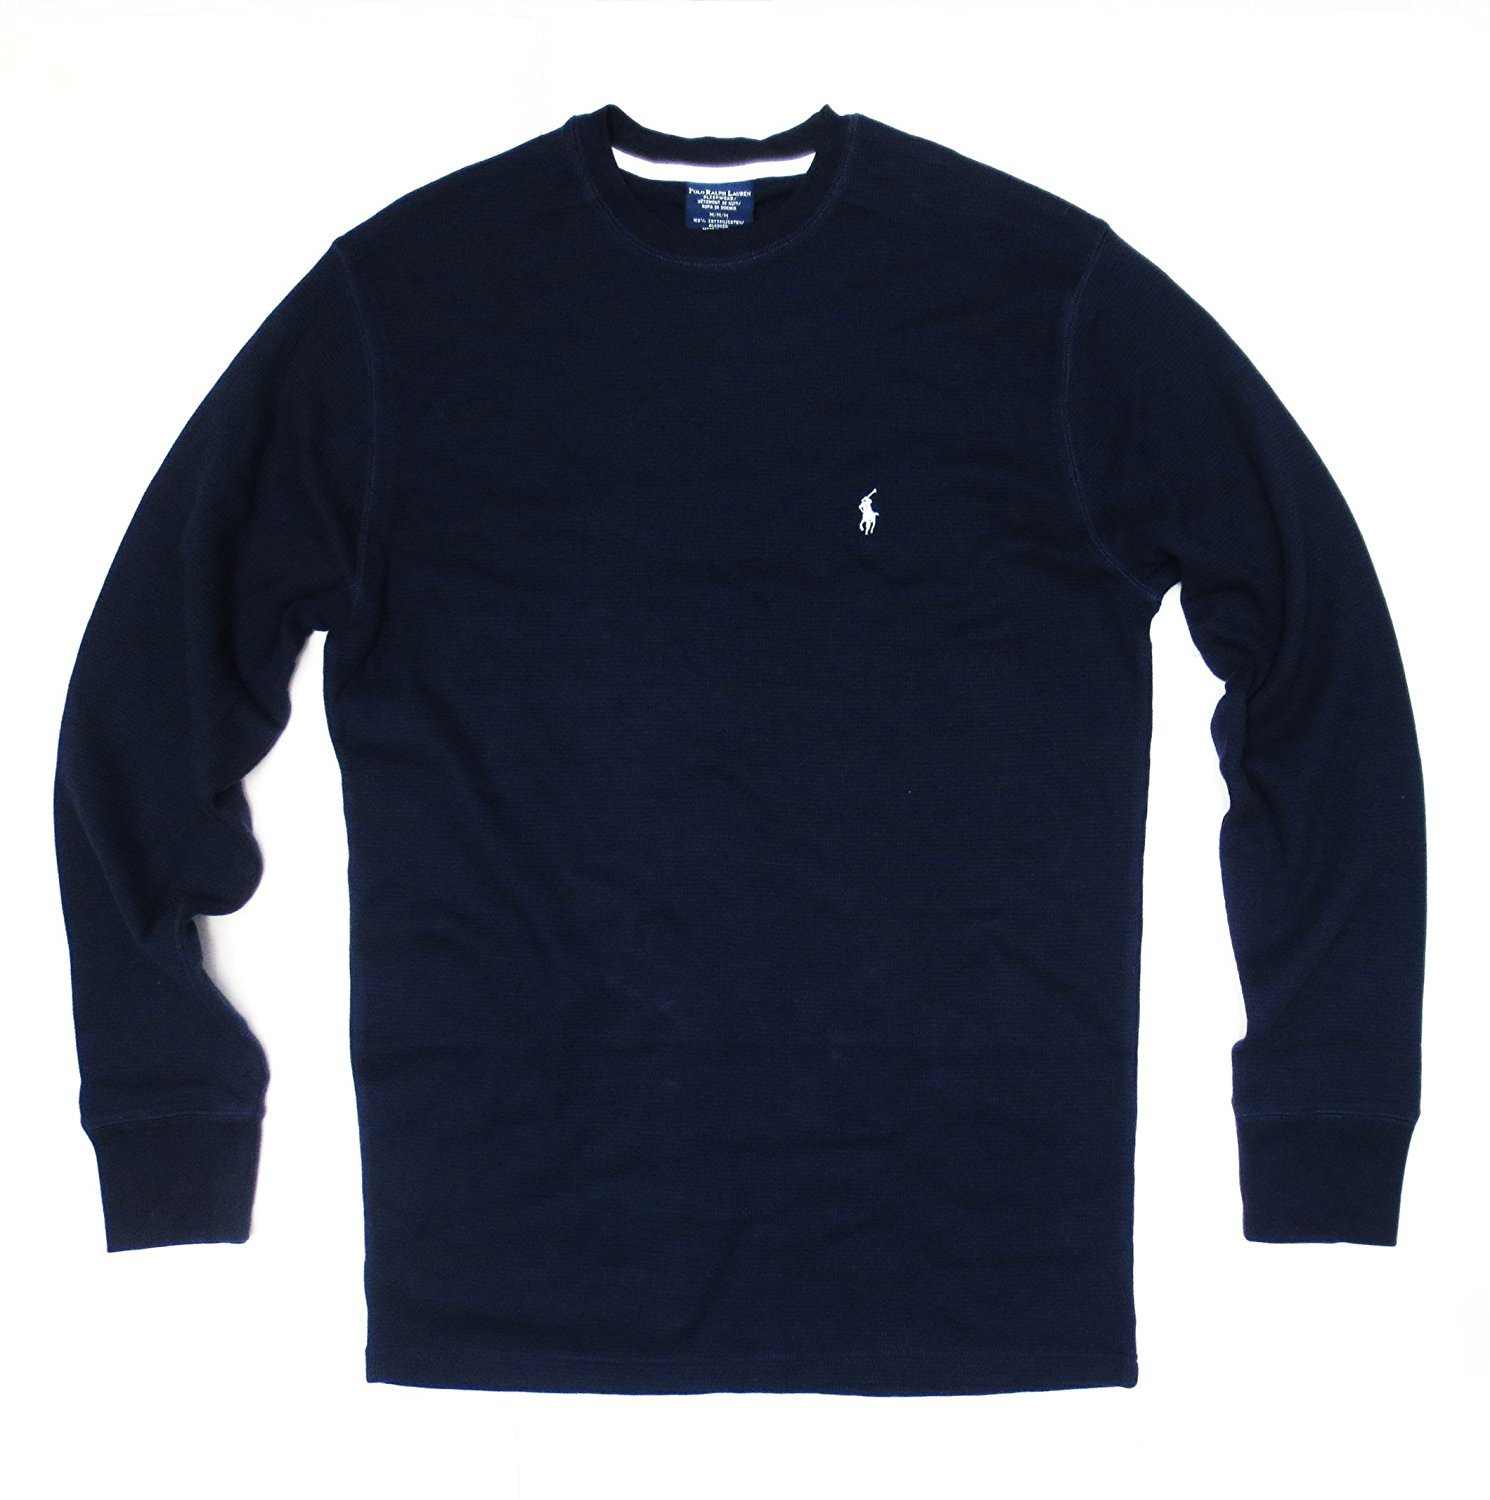 a440a112 Galleon - Polo Ralph Lauren Men's Long-sleeved T-shirt/Sleepwear/Thermal  (Large, Cruise Navy/White Pony)